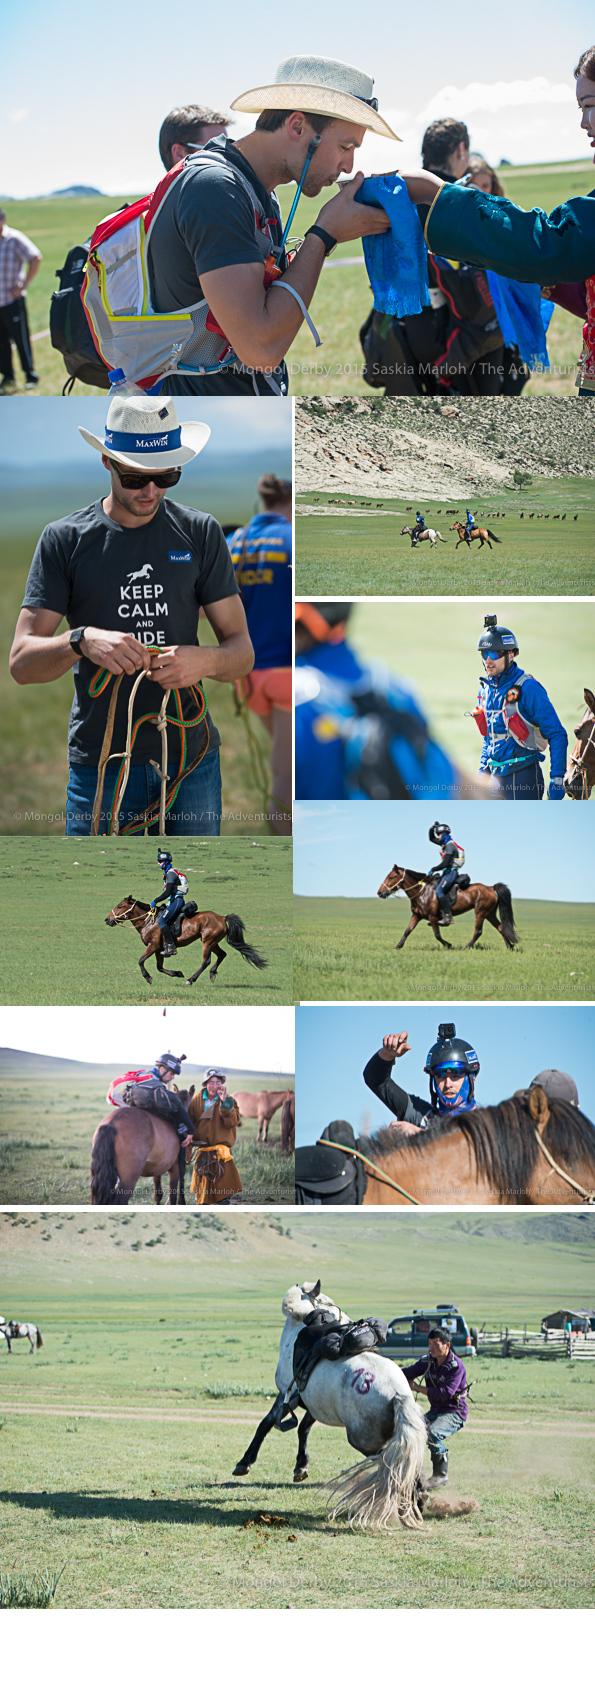 Maxim Van Lierde, place 3 of the Mongol Derby 2015 photos by Saskia Marloh